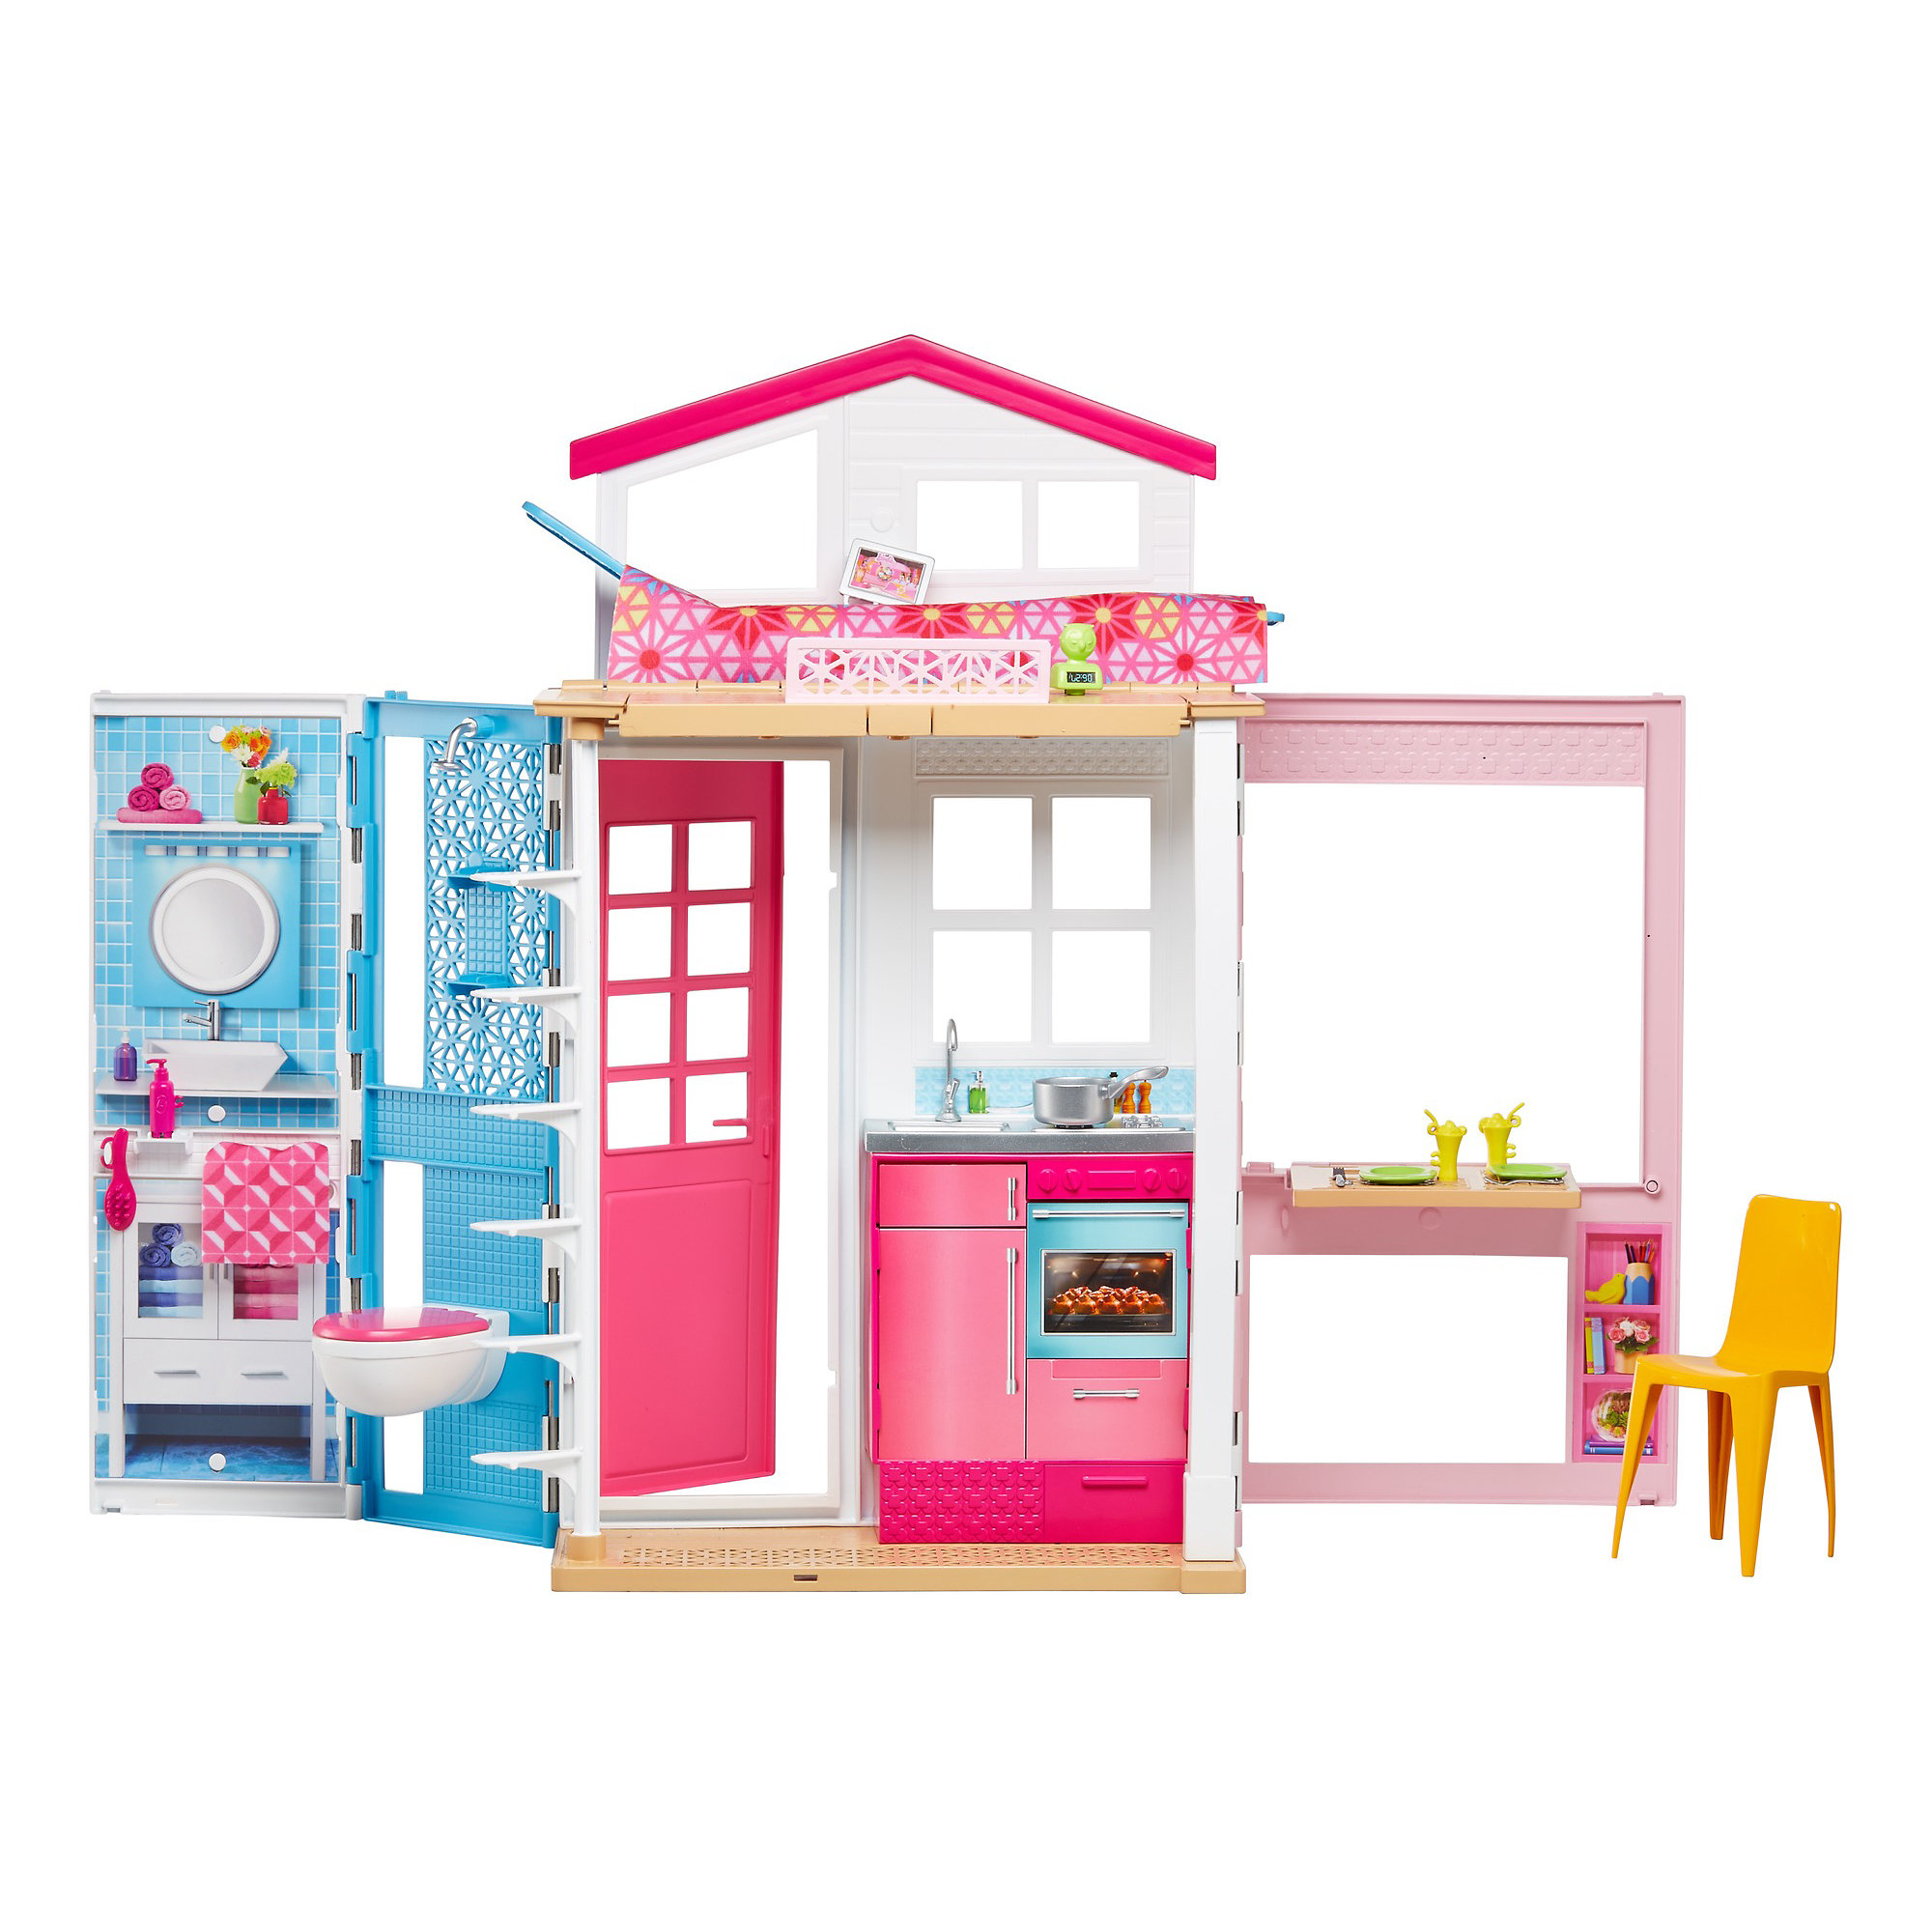 Barbie 2-Story House by MATTEL INC.